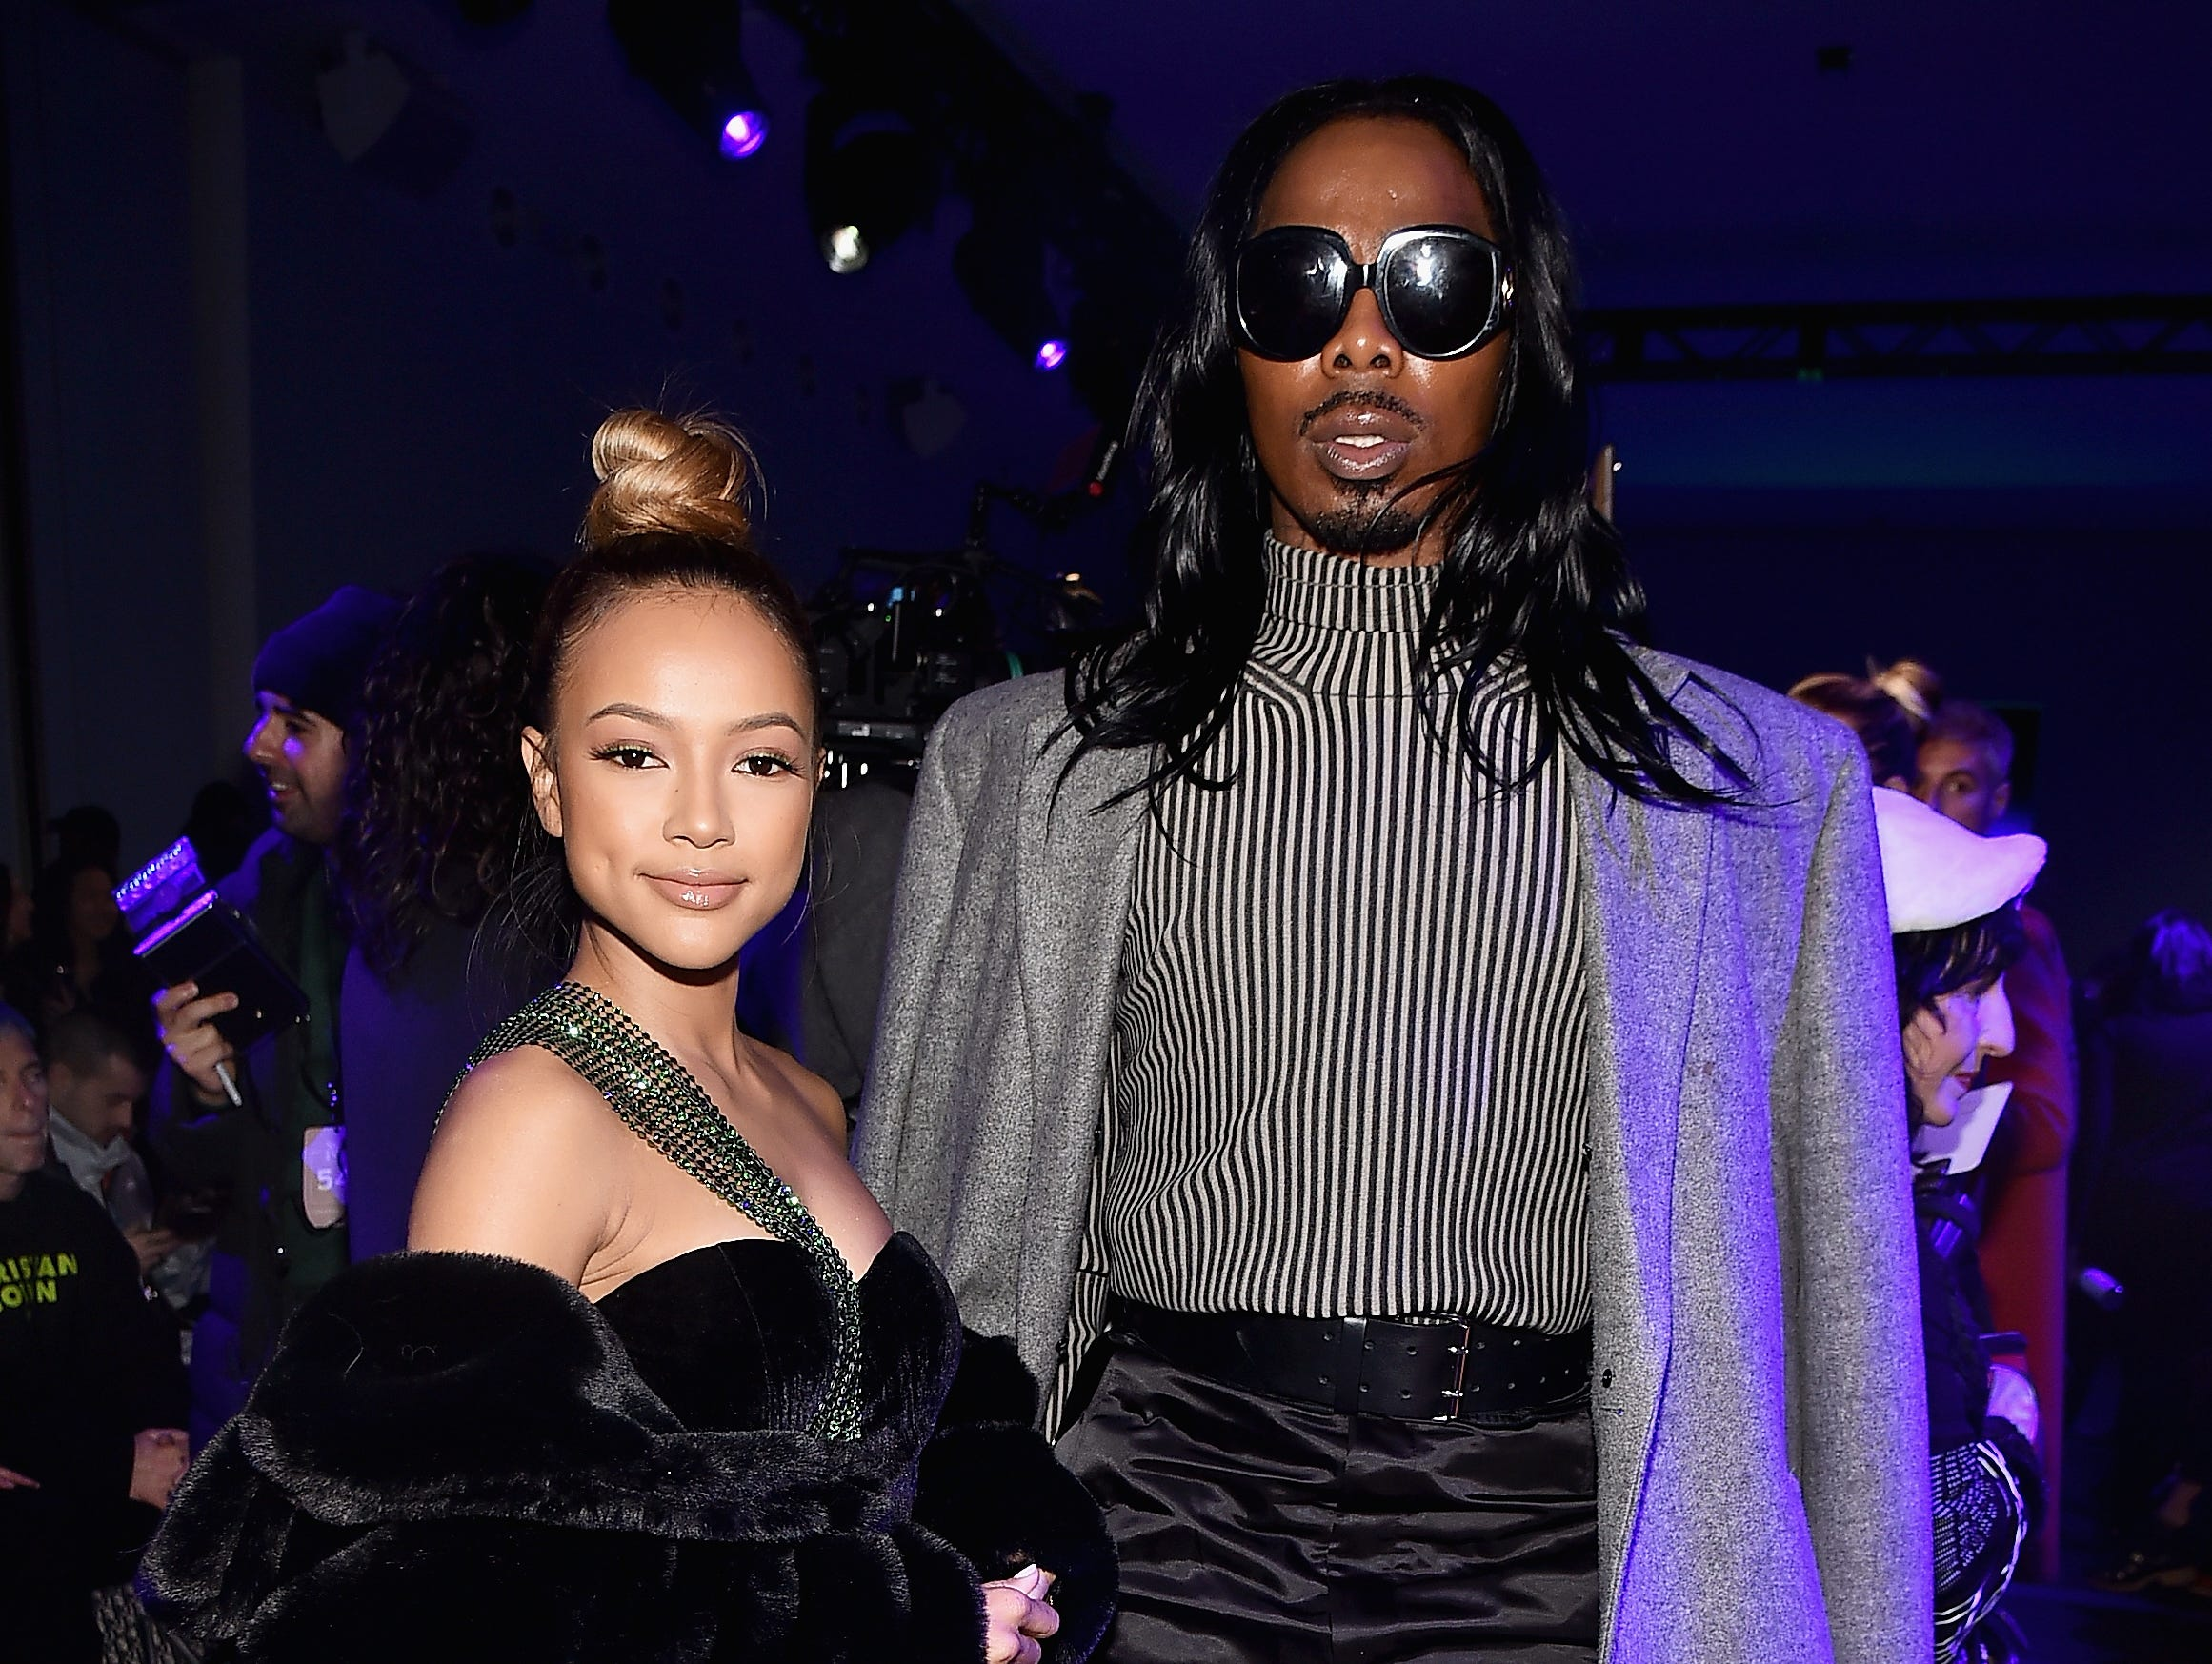 NEW YORK, NY - FEBRUARY 12:  Karrueche Tran and EJ King attend the Christian Cowan front row during New York Fashion Week: The Shows at Gallery II at Spring Studios on February 12, 2019 in New York City.  (Photo by Theo Wargo/Getty Images for NYFW: The Shows) ORG XMIT: 775290956 ORIG FILE ID: 1124278903